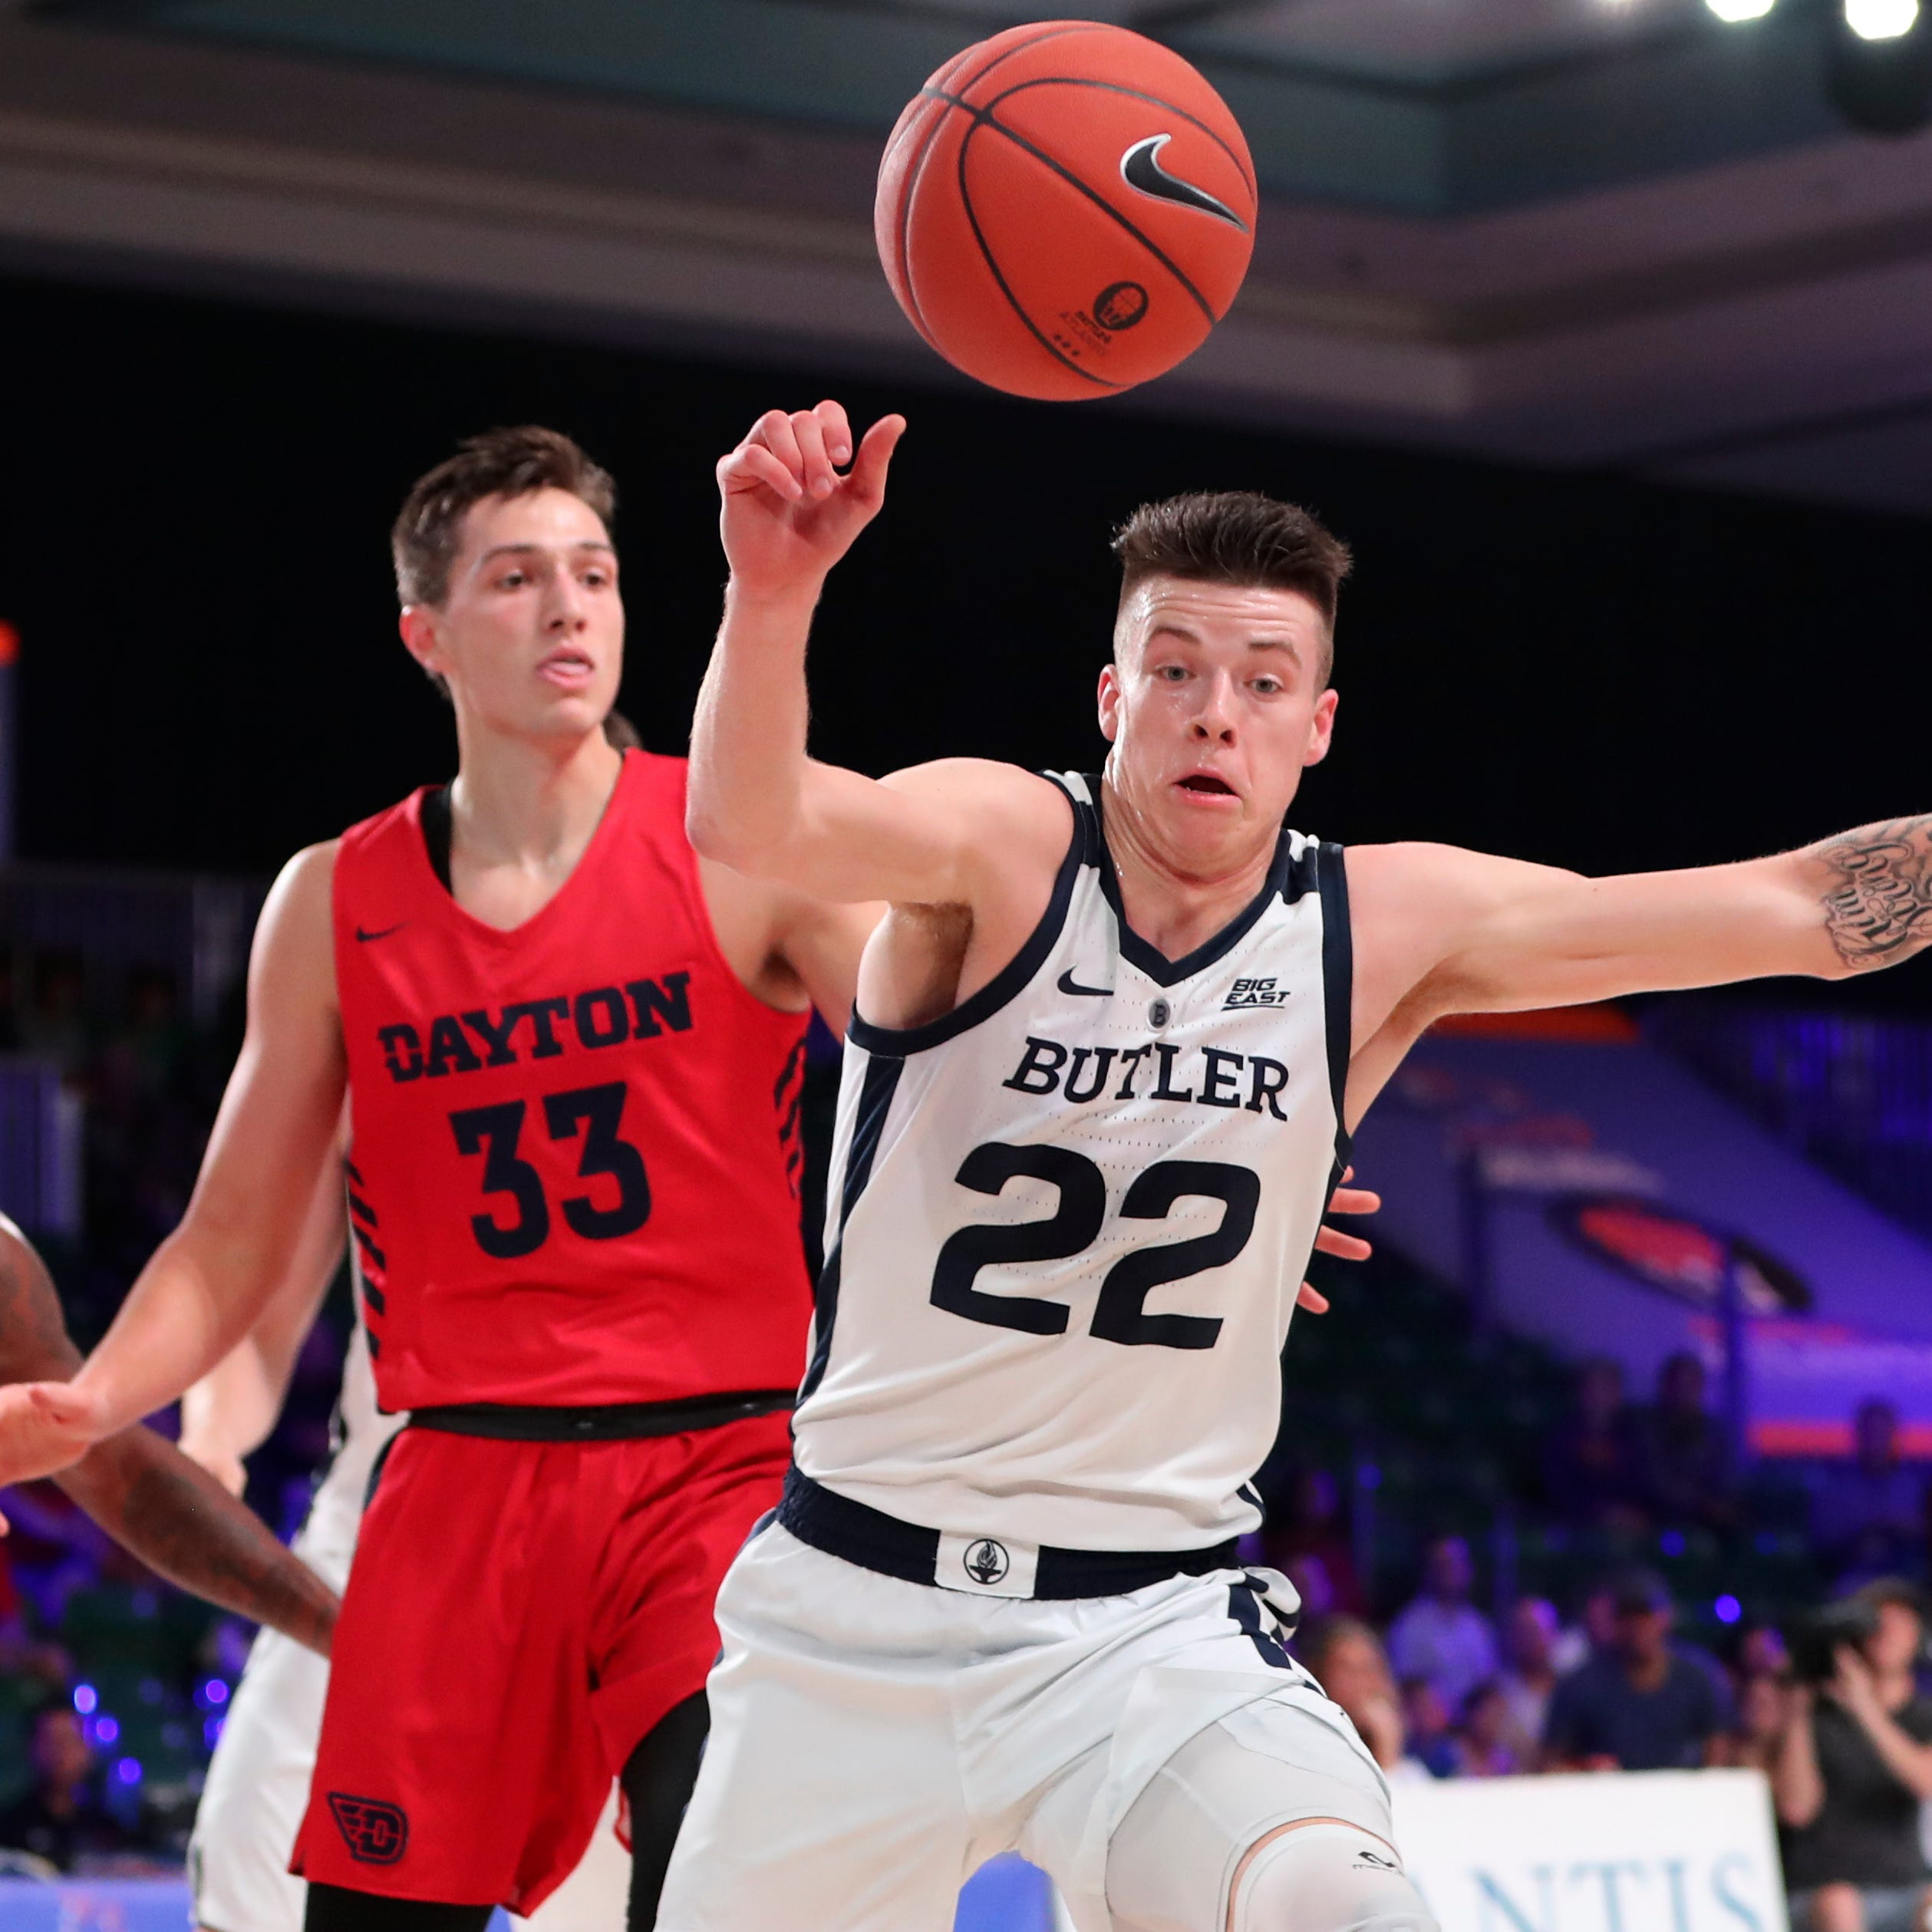 Butler loses to Dayton for first time in more than 27 years